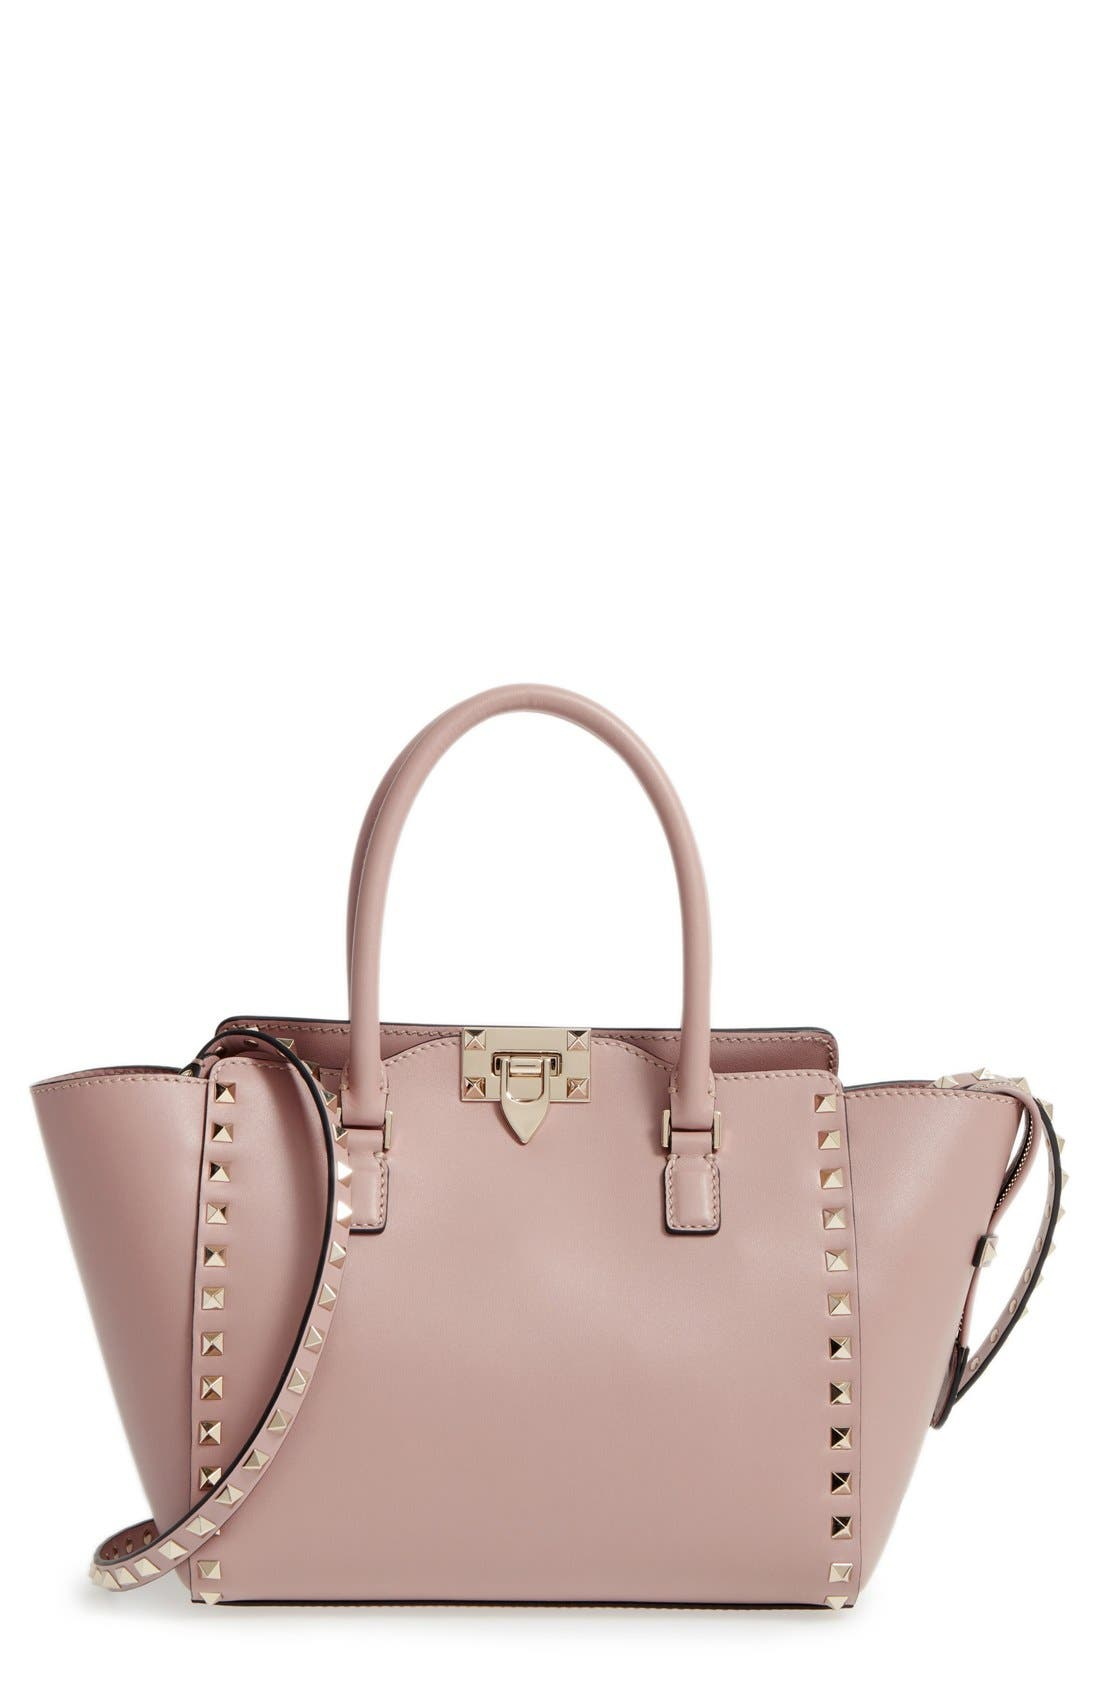 VALENTINO GARAVANI Rockstud Small Double Handle Leather Tote